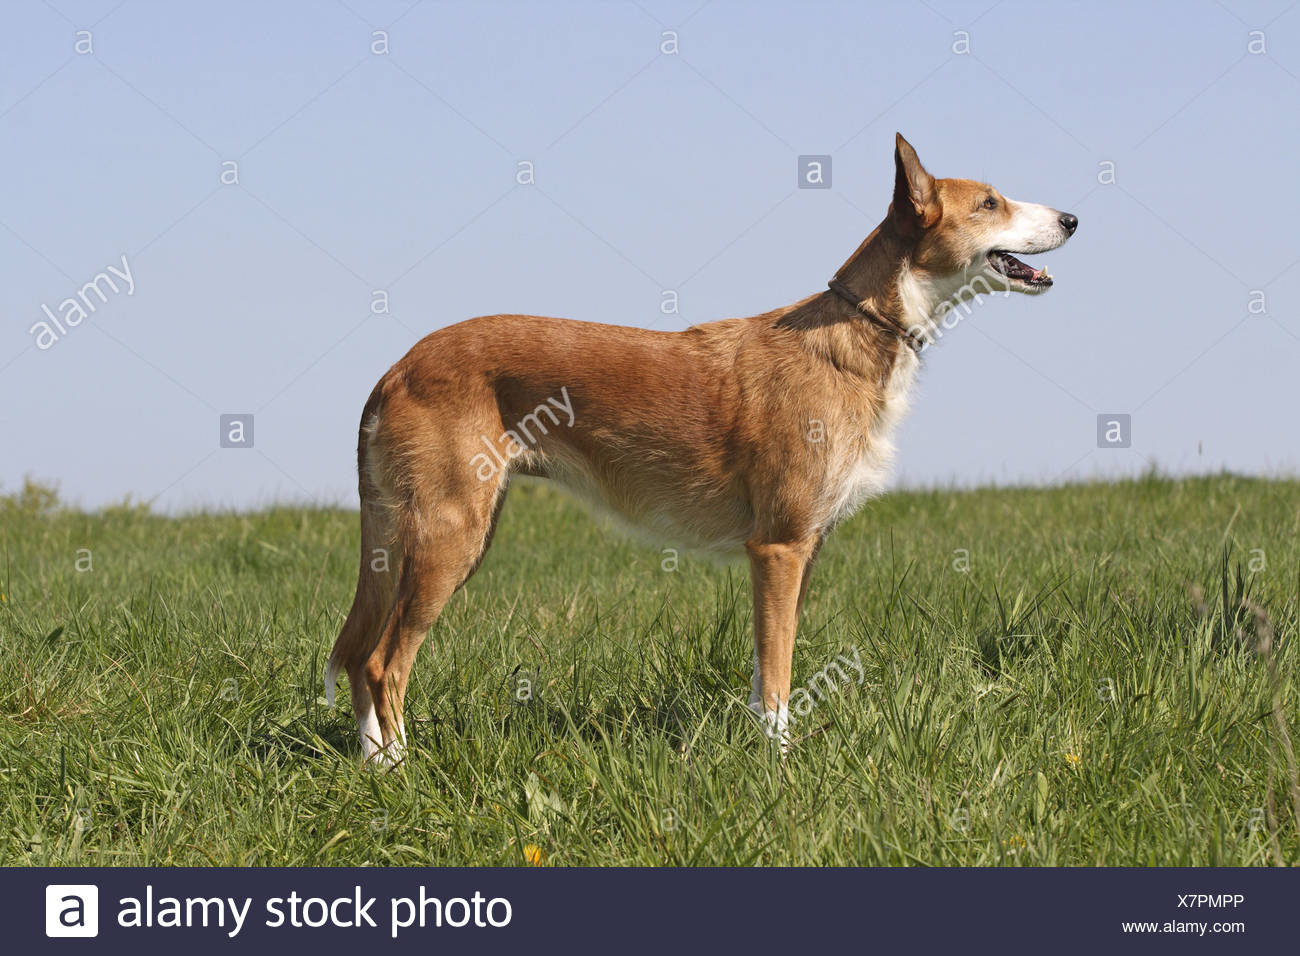 Canarian Warren Hound (Canis lupus f. familiaris), standing on meadow Stock Photo